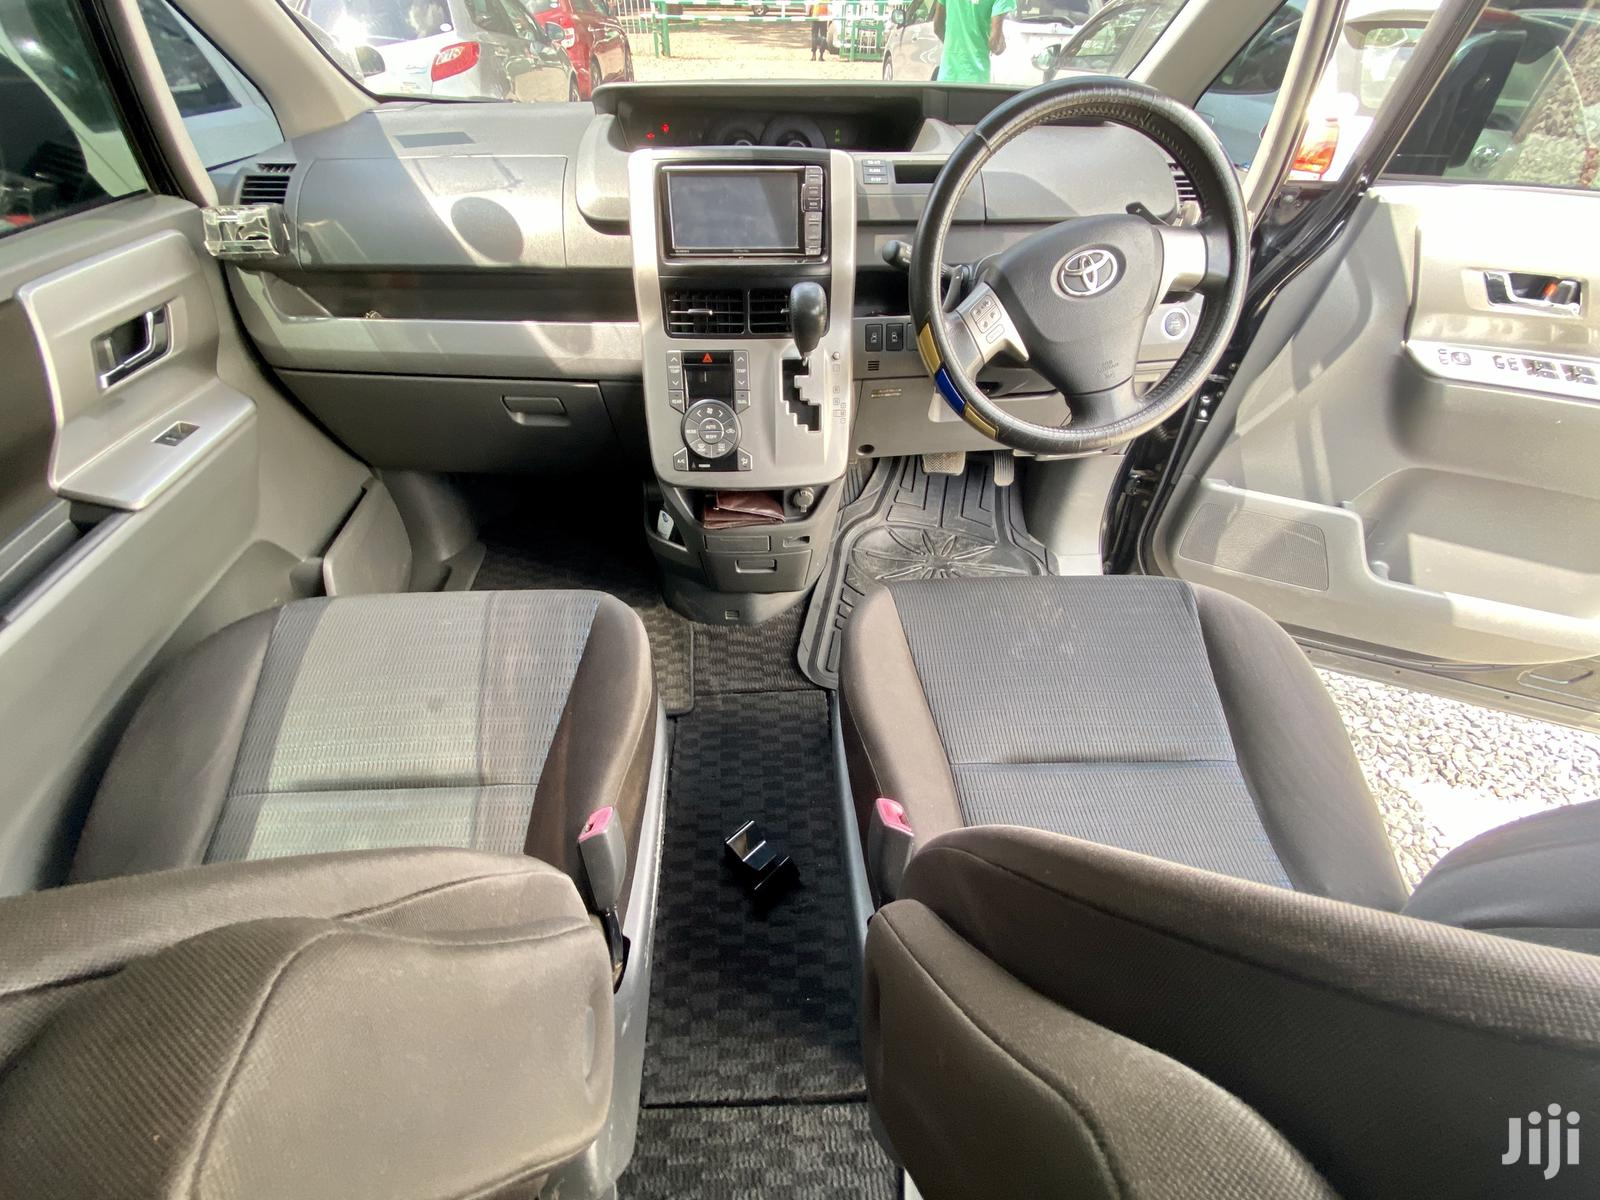 Toyota Voxy 2010 Black | Cars for sale in Kilimani, Nairobi, Kenya